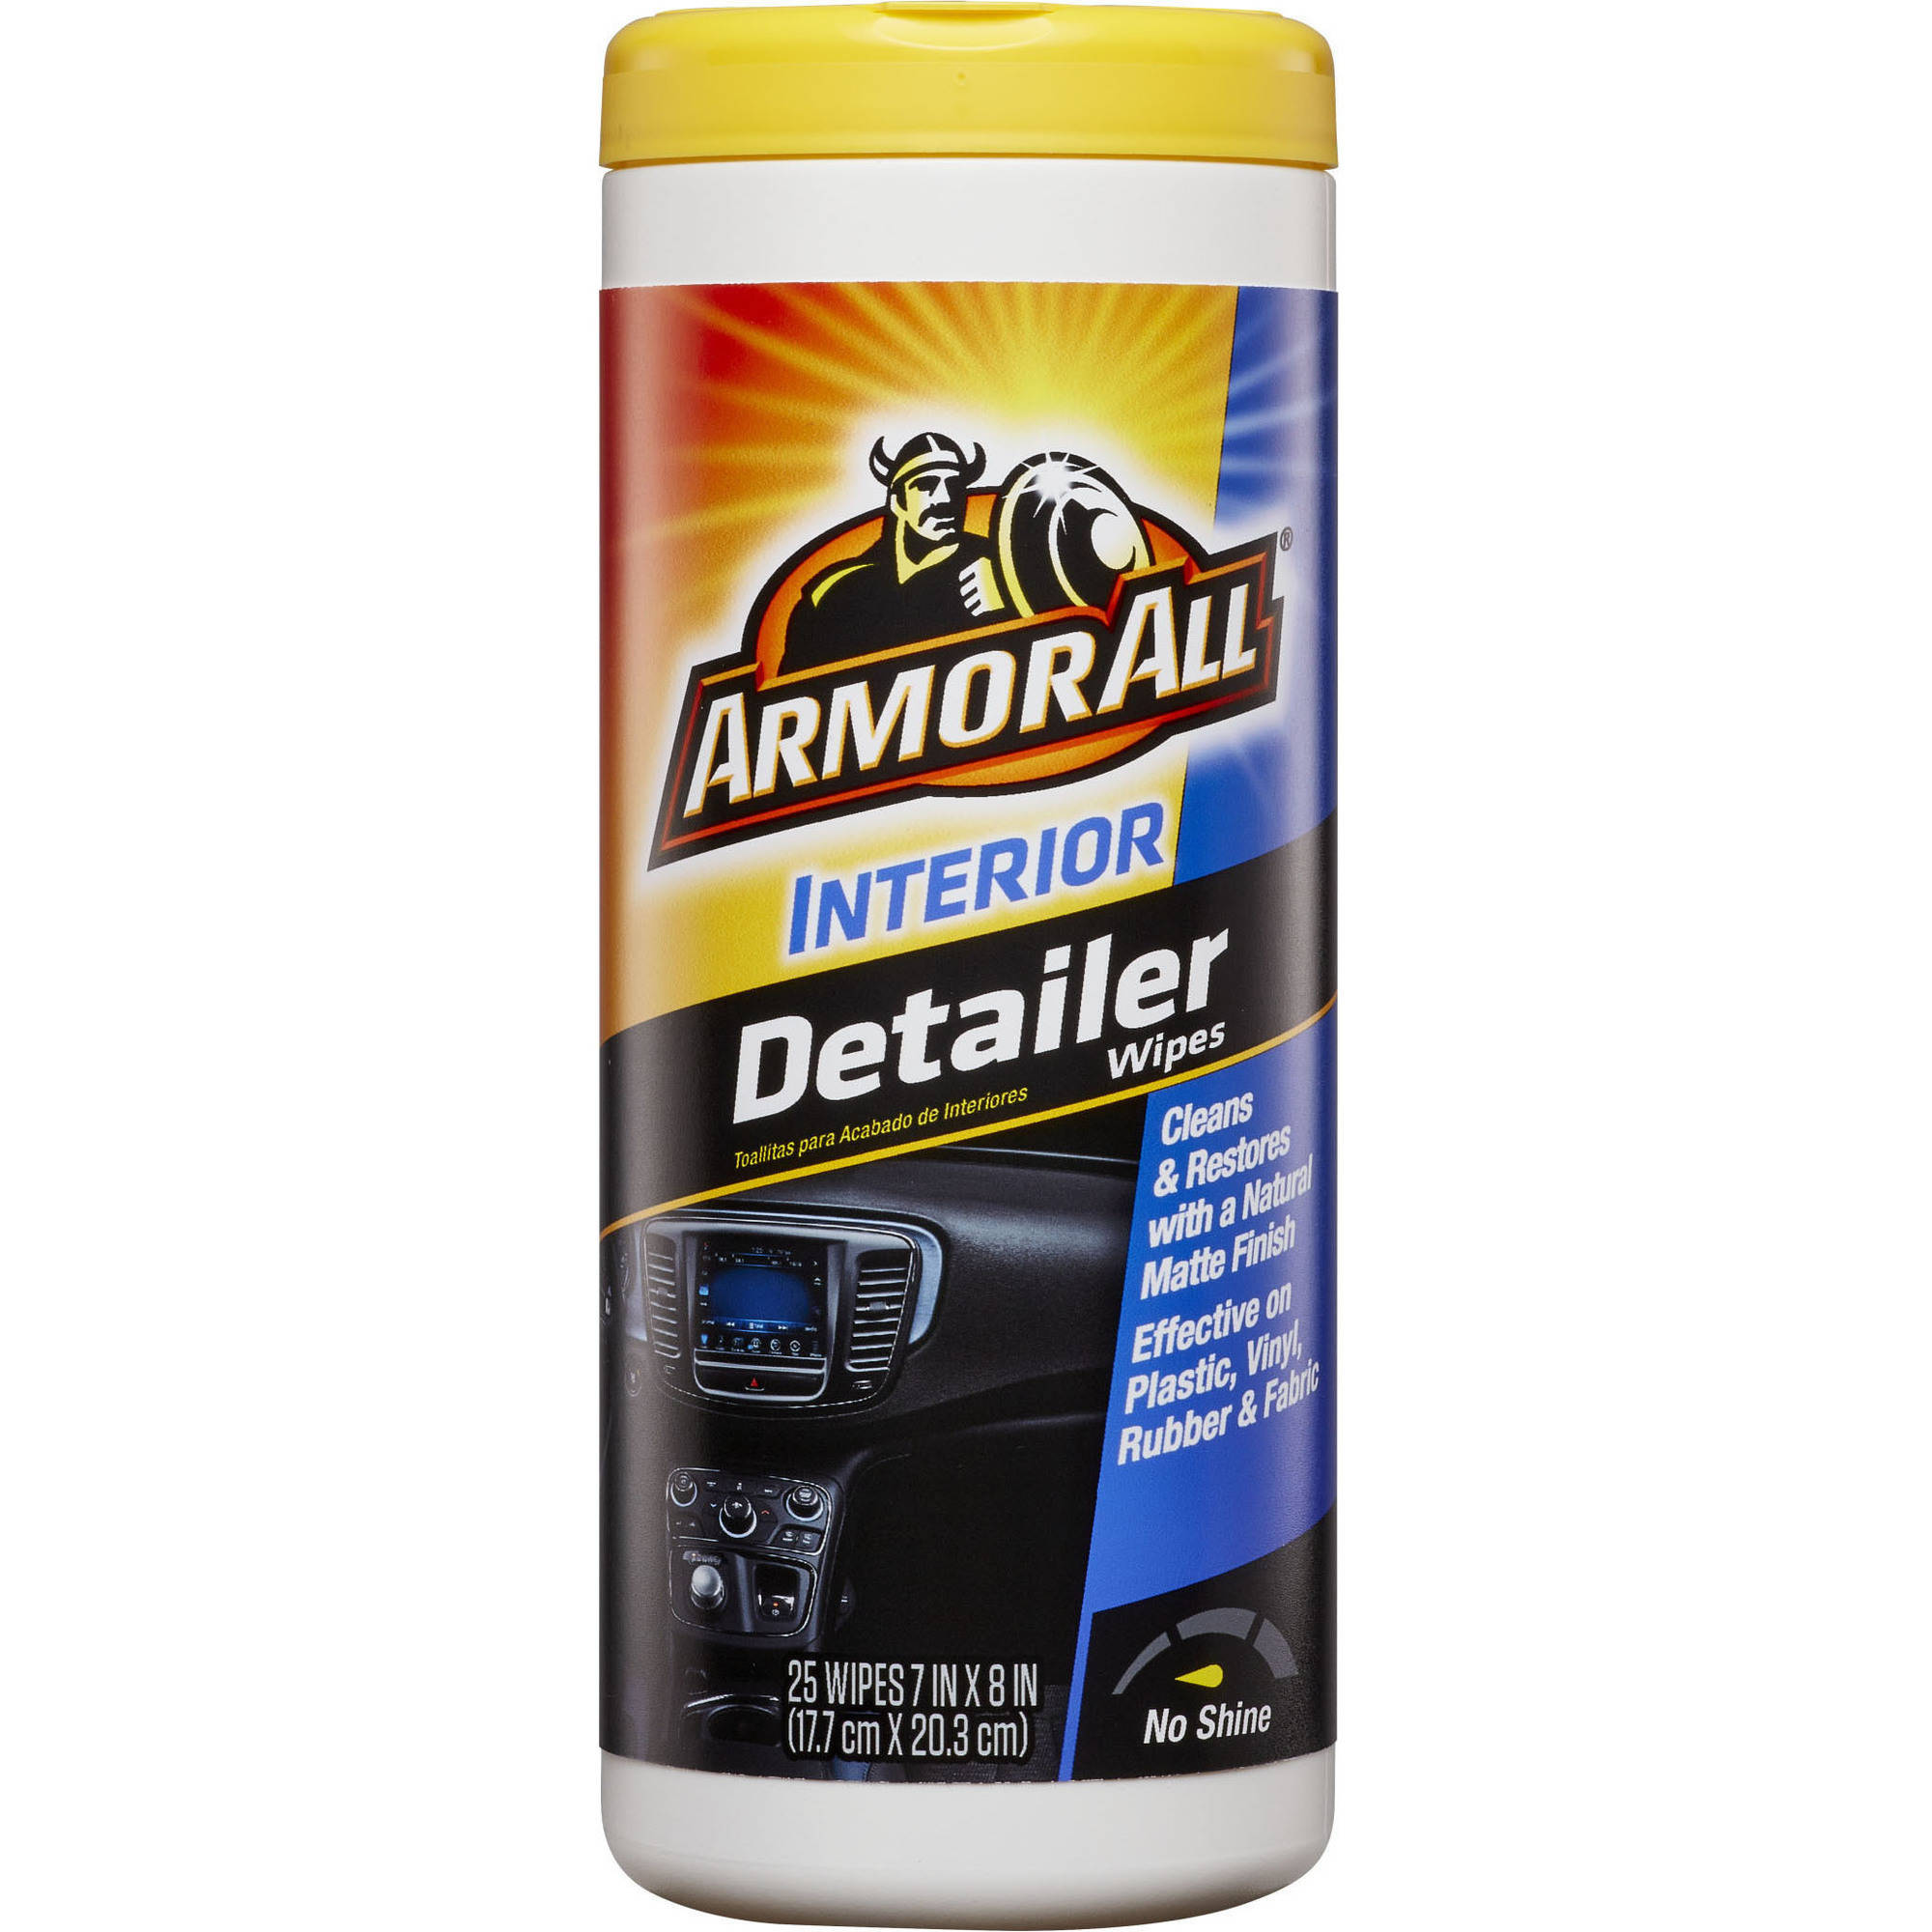 Armor All Interior Detailer Wipes, 25 count, Car Cleaning